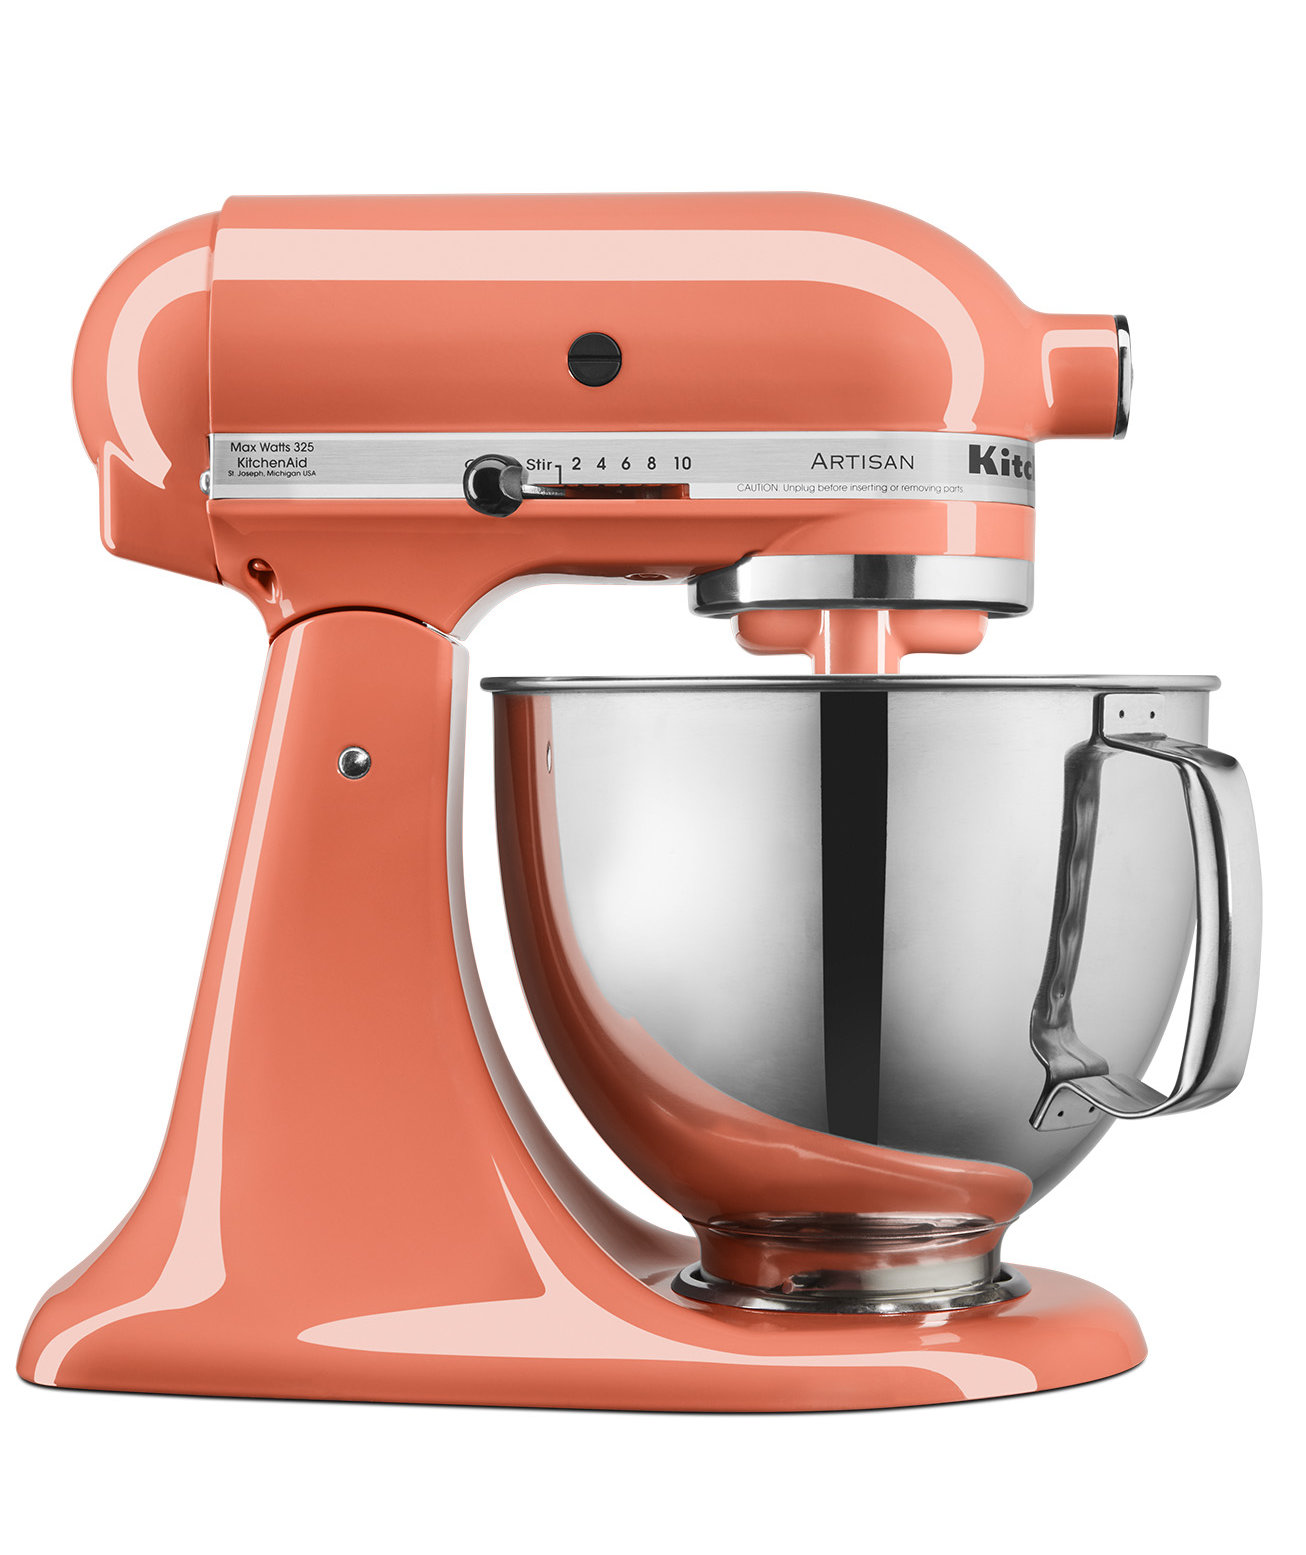 KitchenAid's New Color of the Year Is Insanely Gorgeous